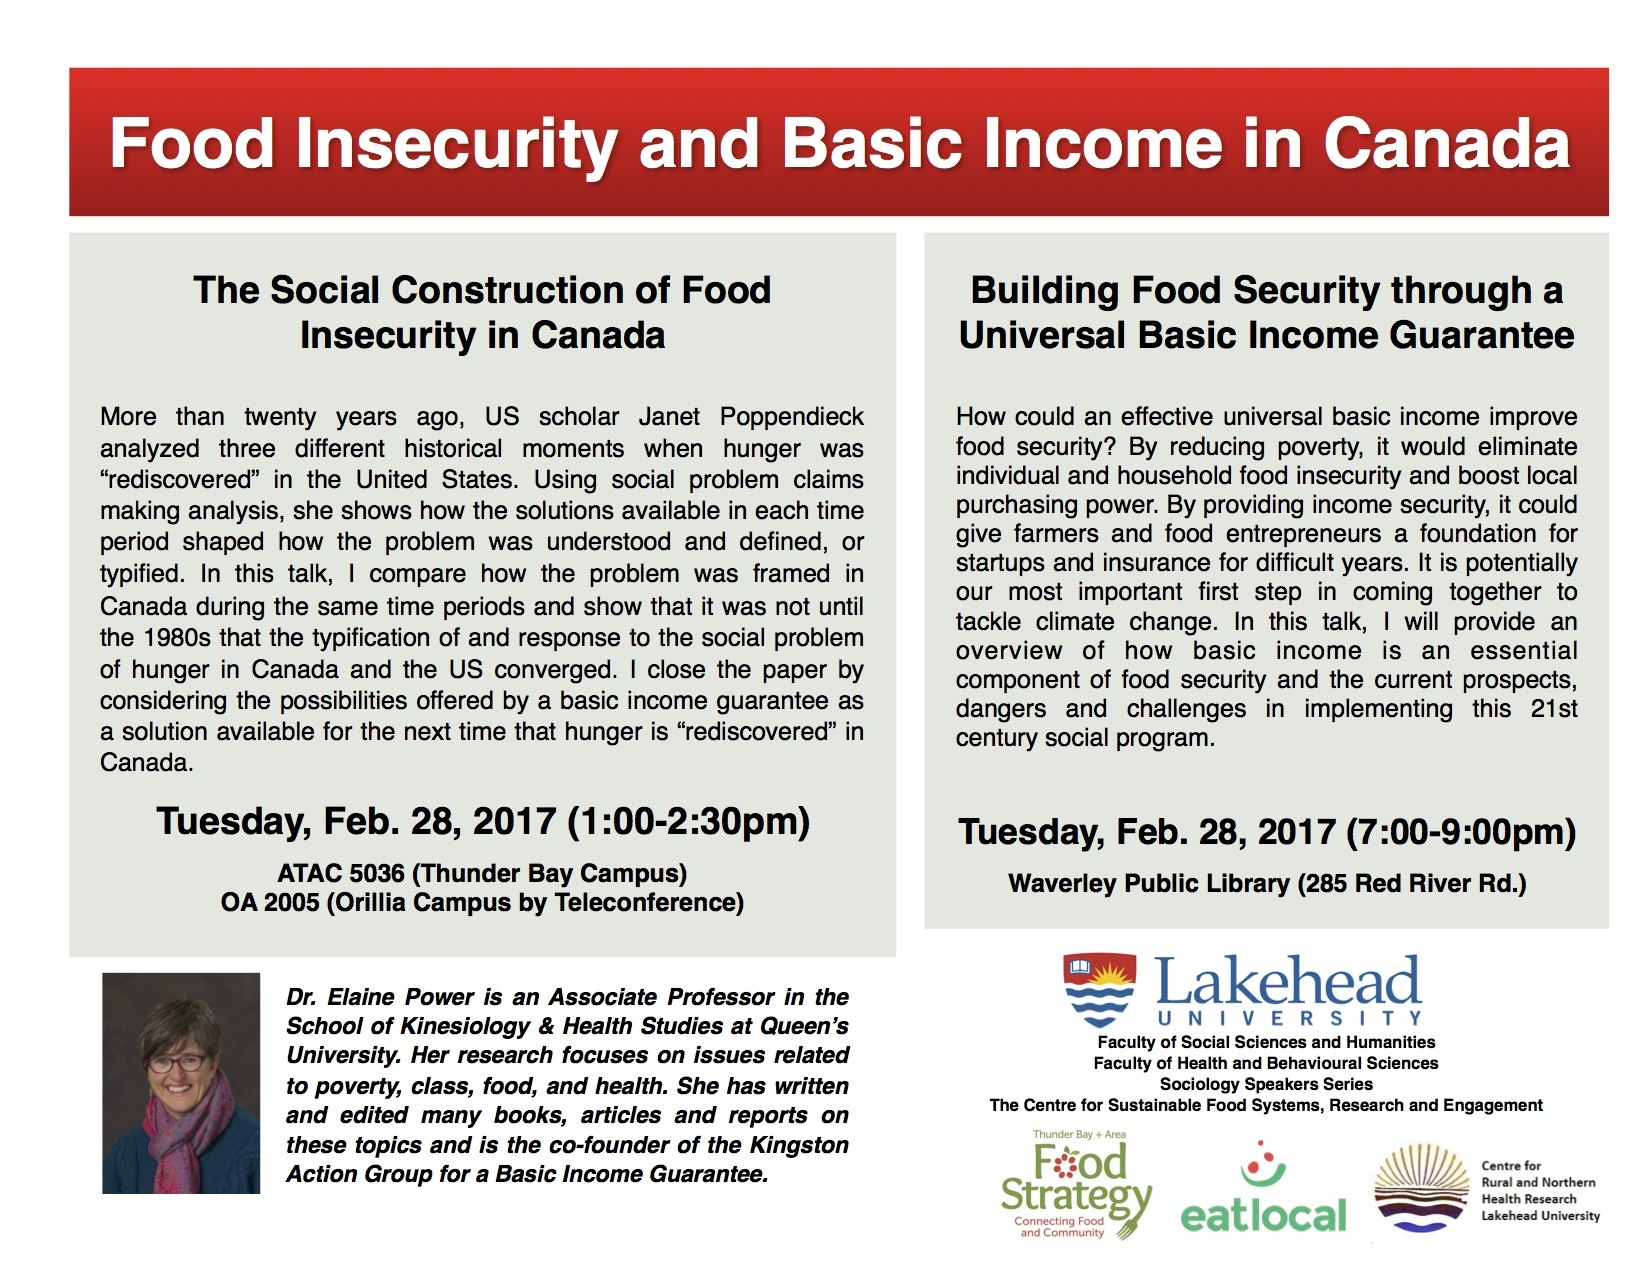 Public Talks: Food Insecurity & Basic Income | The Walleye